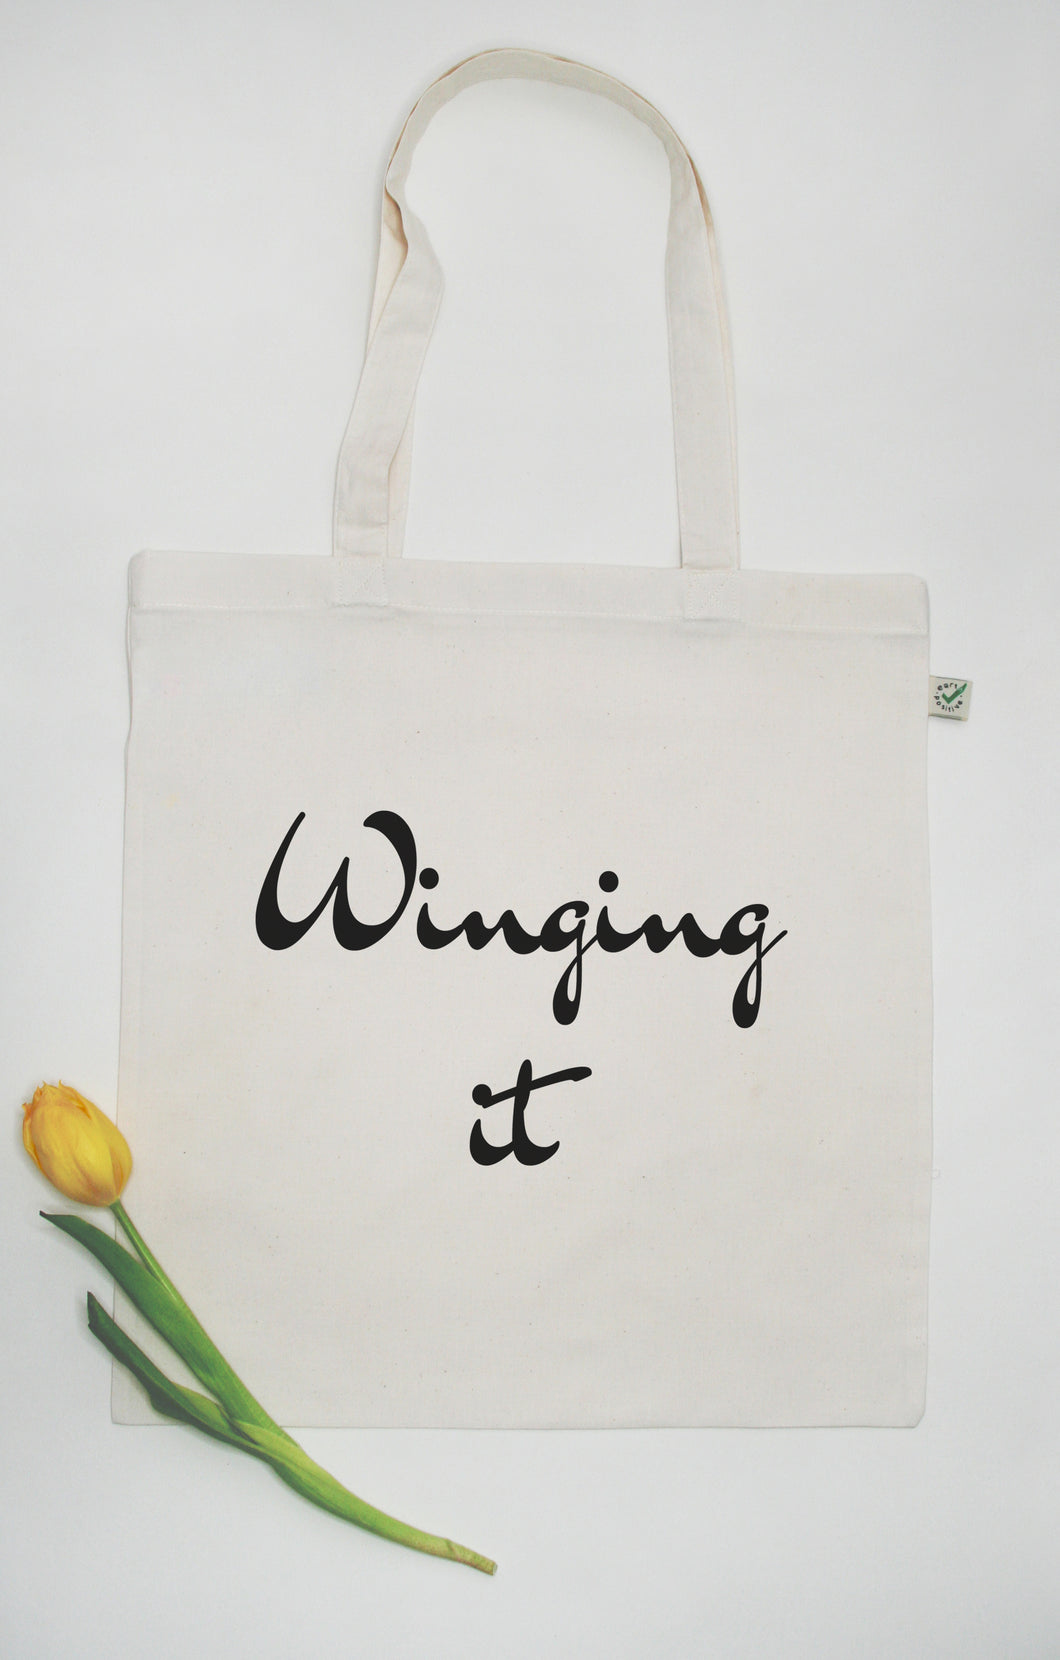 Winging it - 100% Organic and Fairtrade Cotton Tote Bag